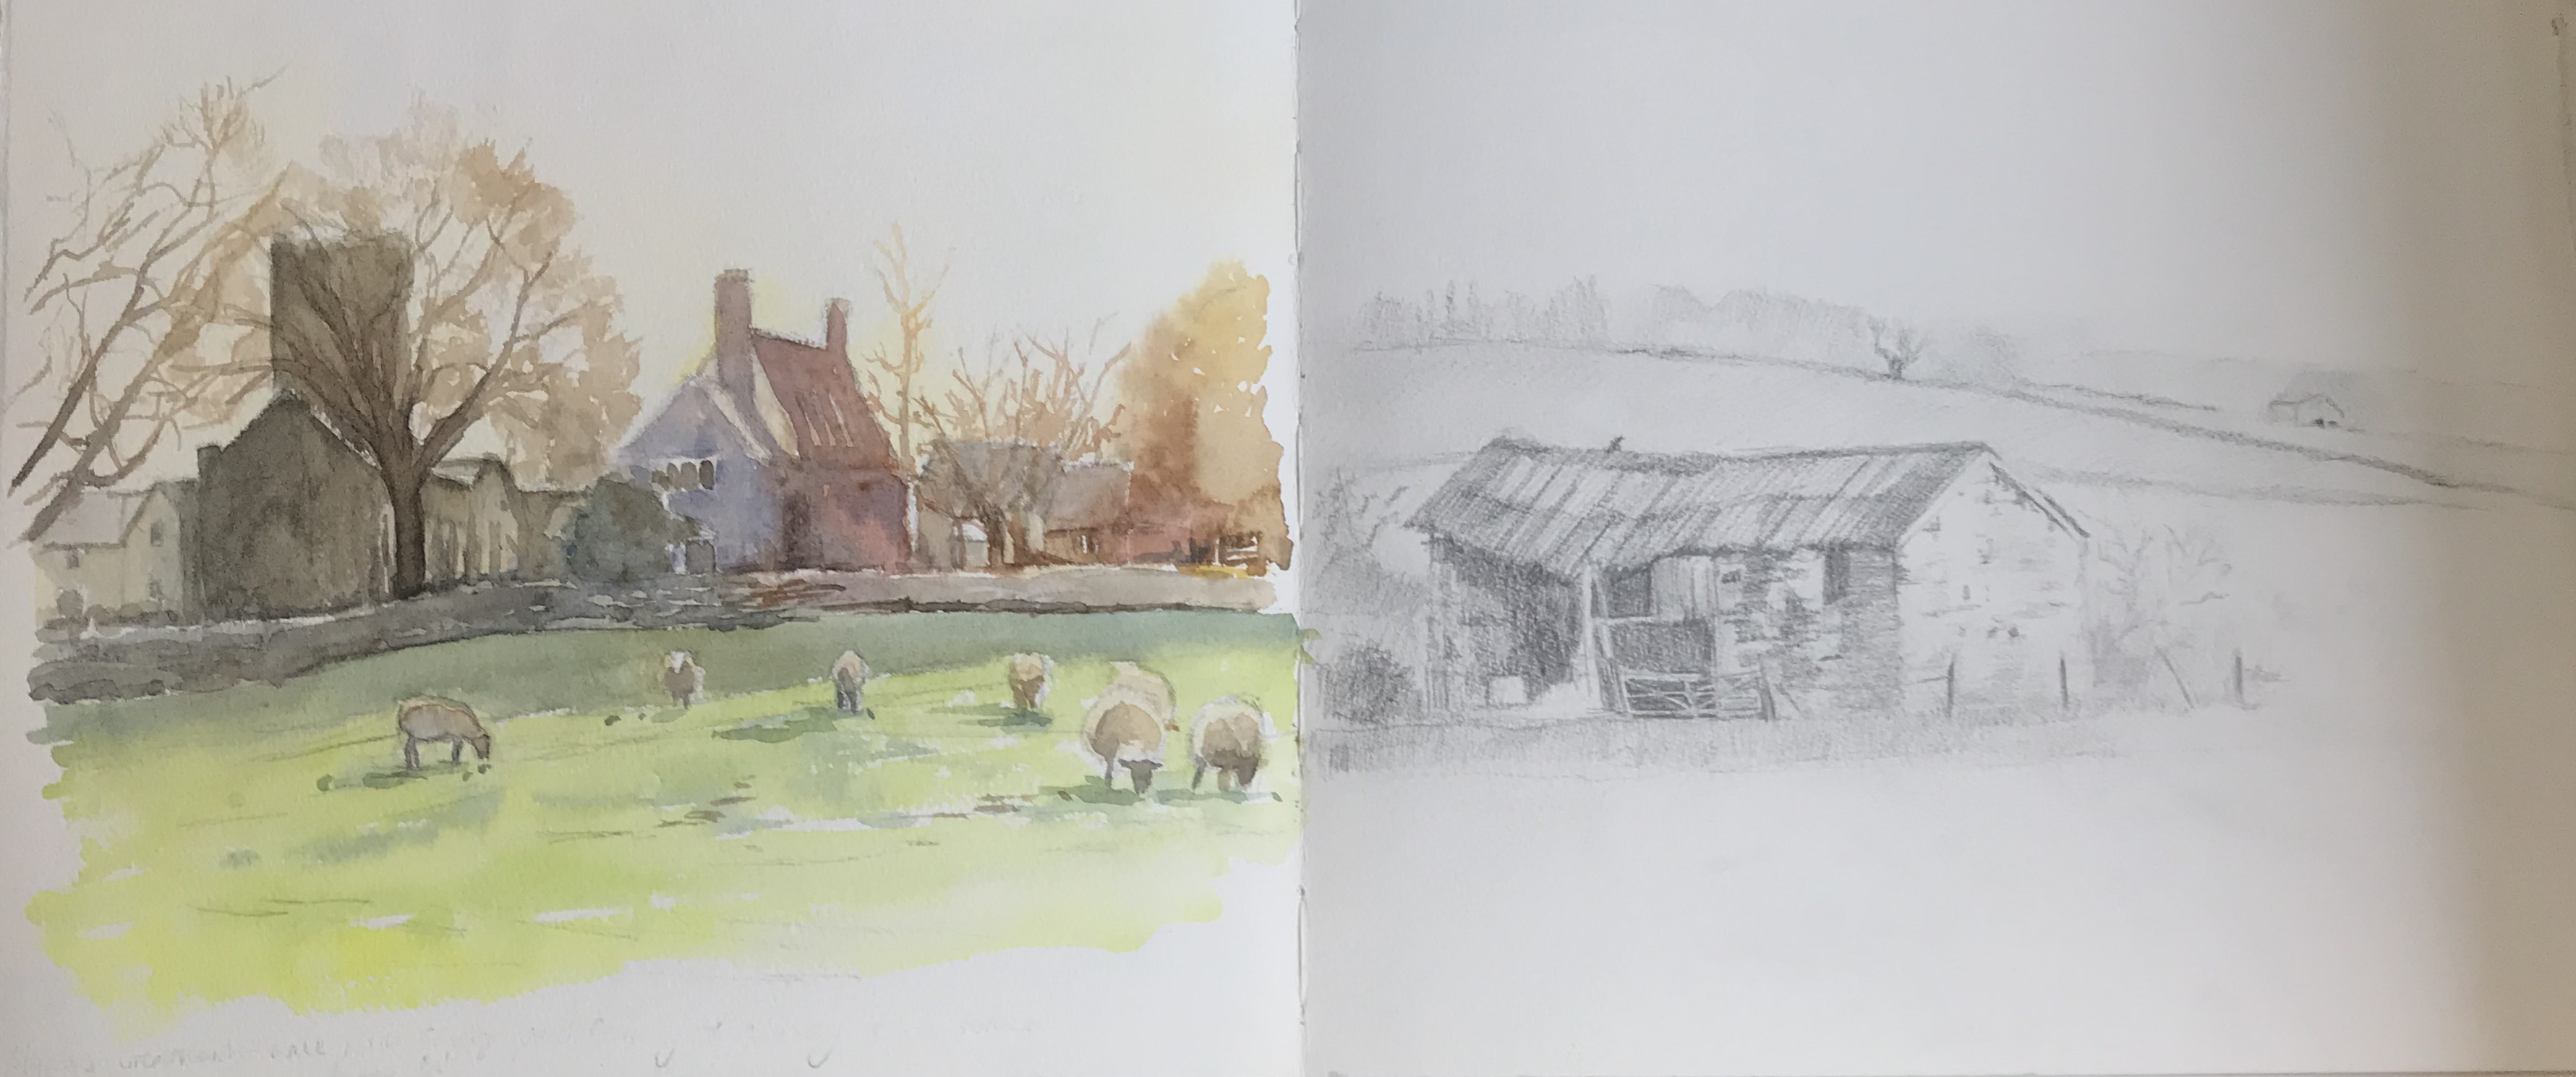 Sketchbook sketches near Home